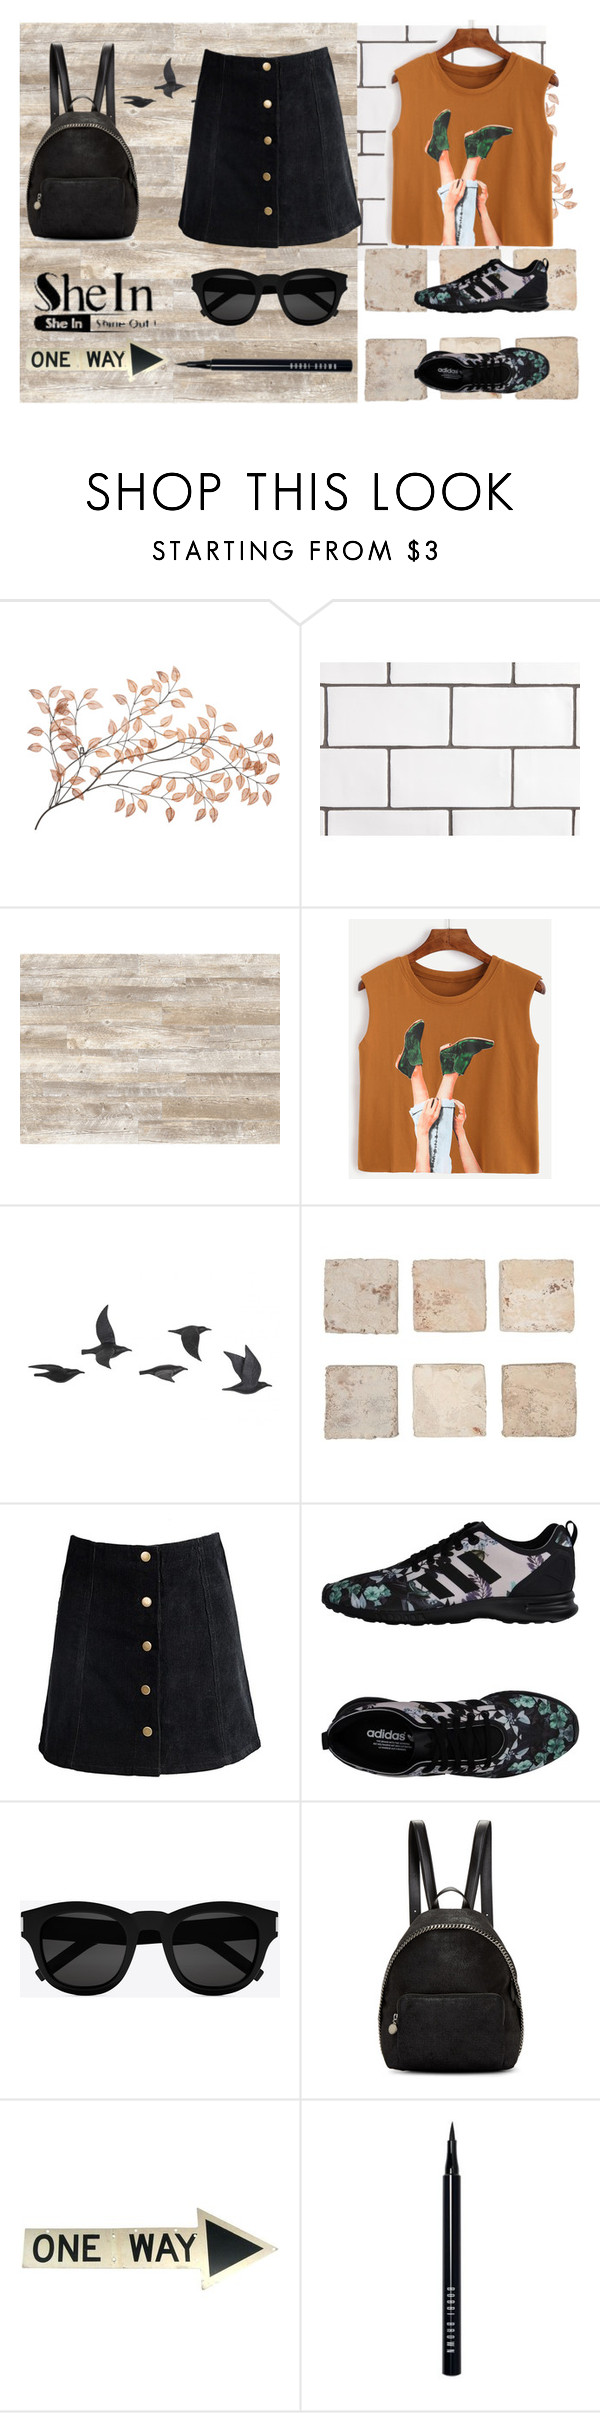 """""""Camel Graphic Print Top"""" by vincapervinca ❤ liked on Polyvore featuring Jayson Home, adidas Originals, Yves Saint Laurent, STELLA McCARTNEY, Bobbi Brown Cosmetics and shein"""